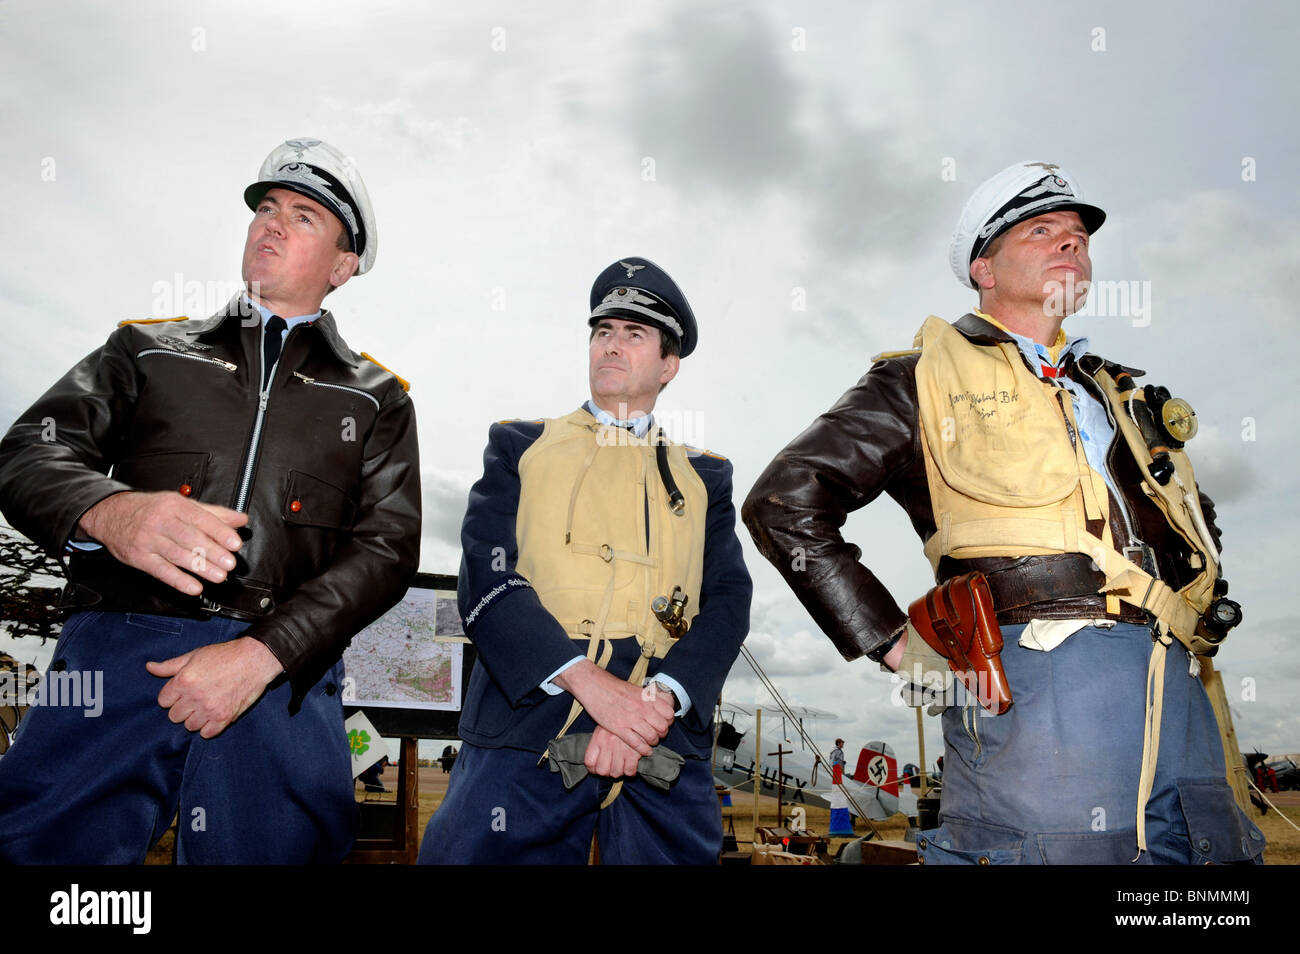 Members of the Luftwaffe Re-enactment Group dressed as German airman at The Royal International Air Tattoo at RAF - Stock Image